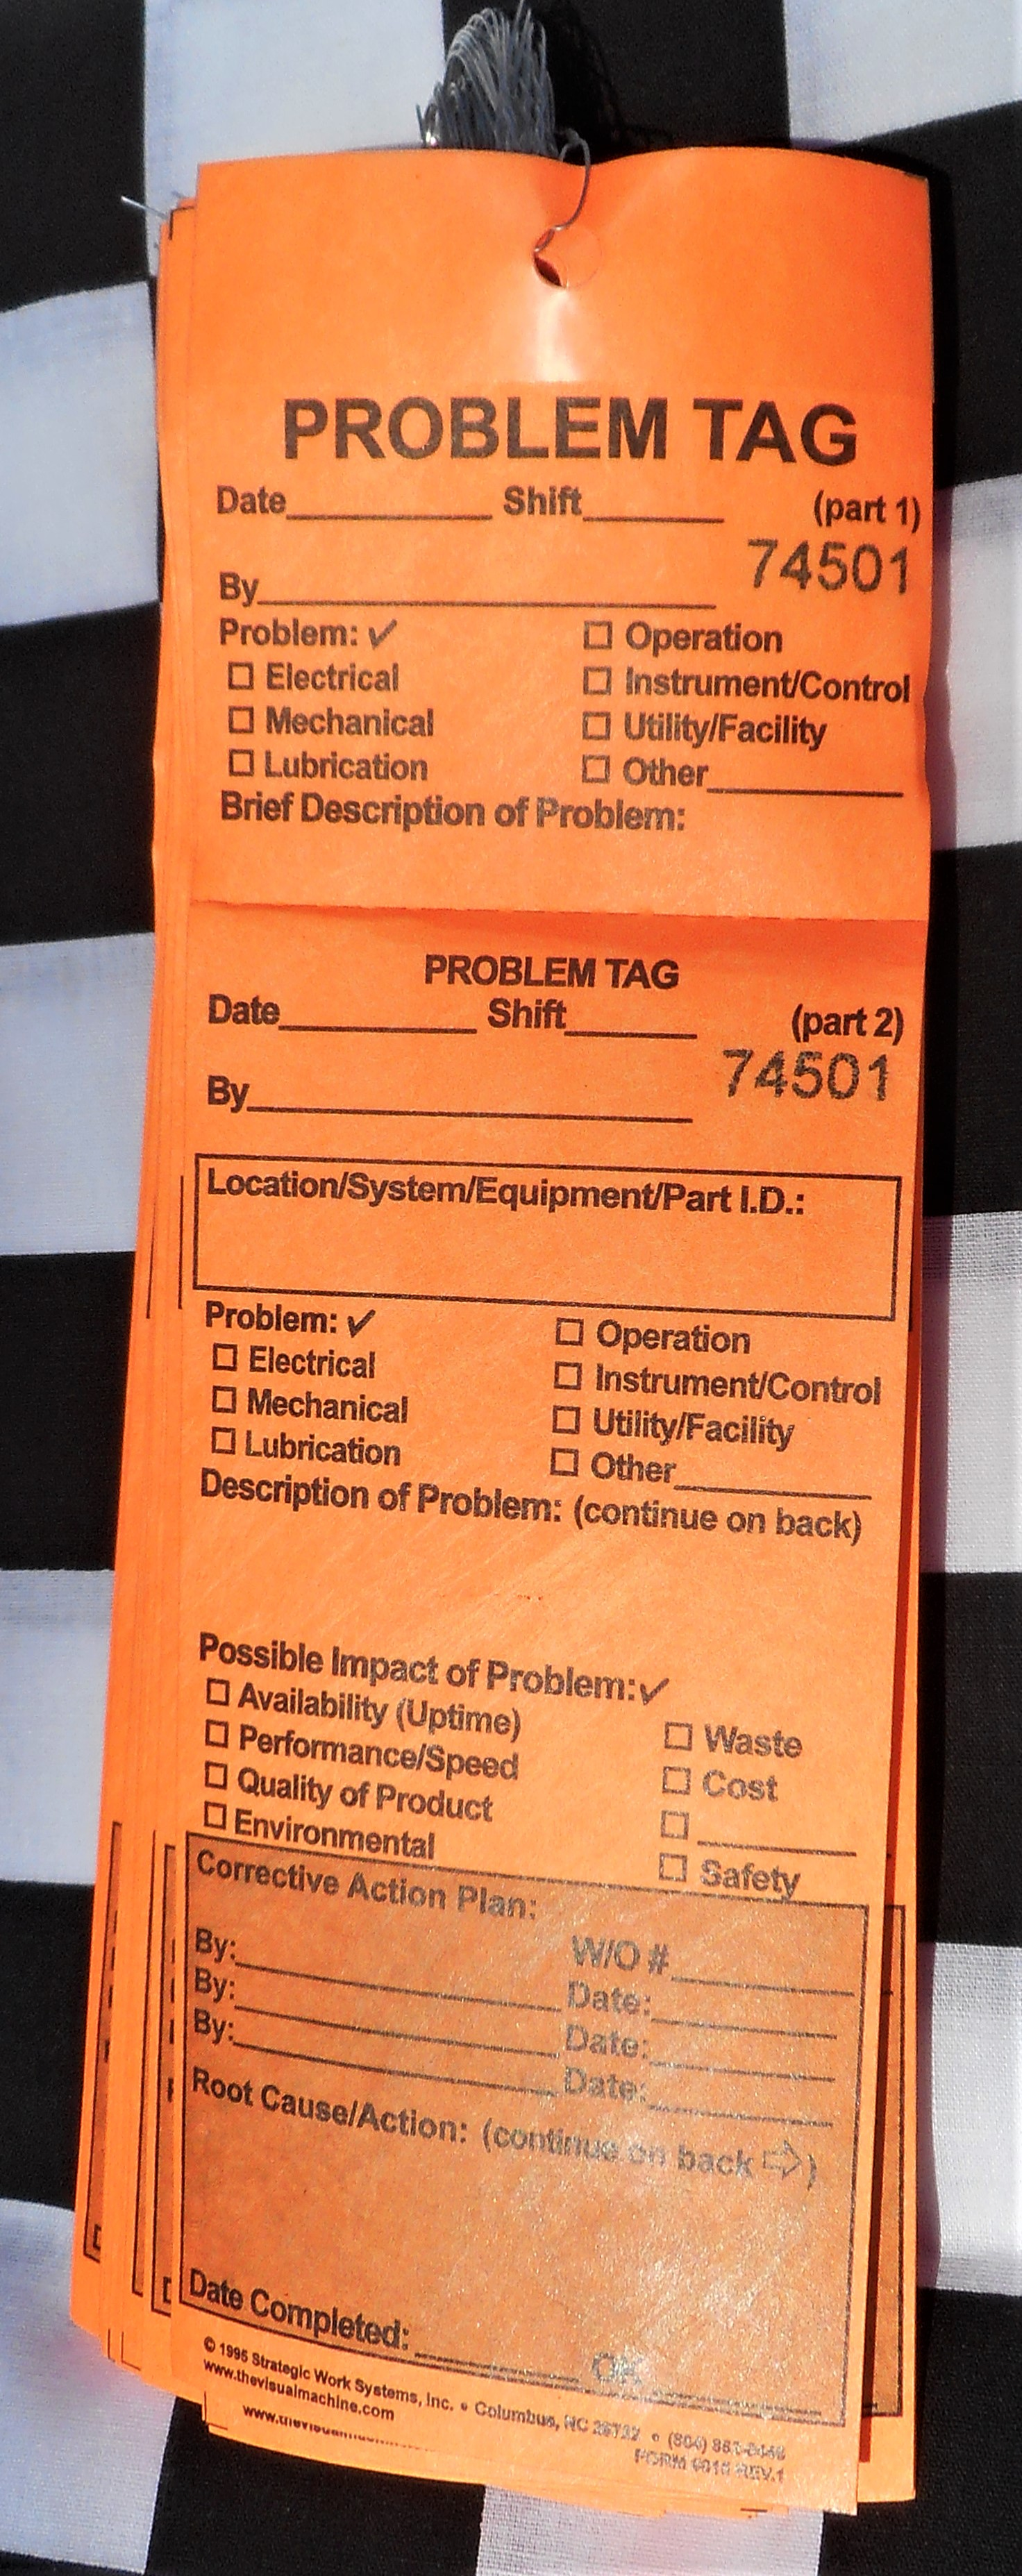 Problem Tags in Tyvek (Bundles of 50)